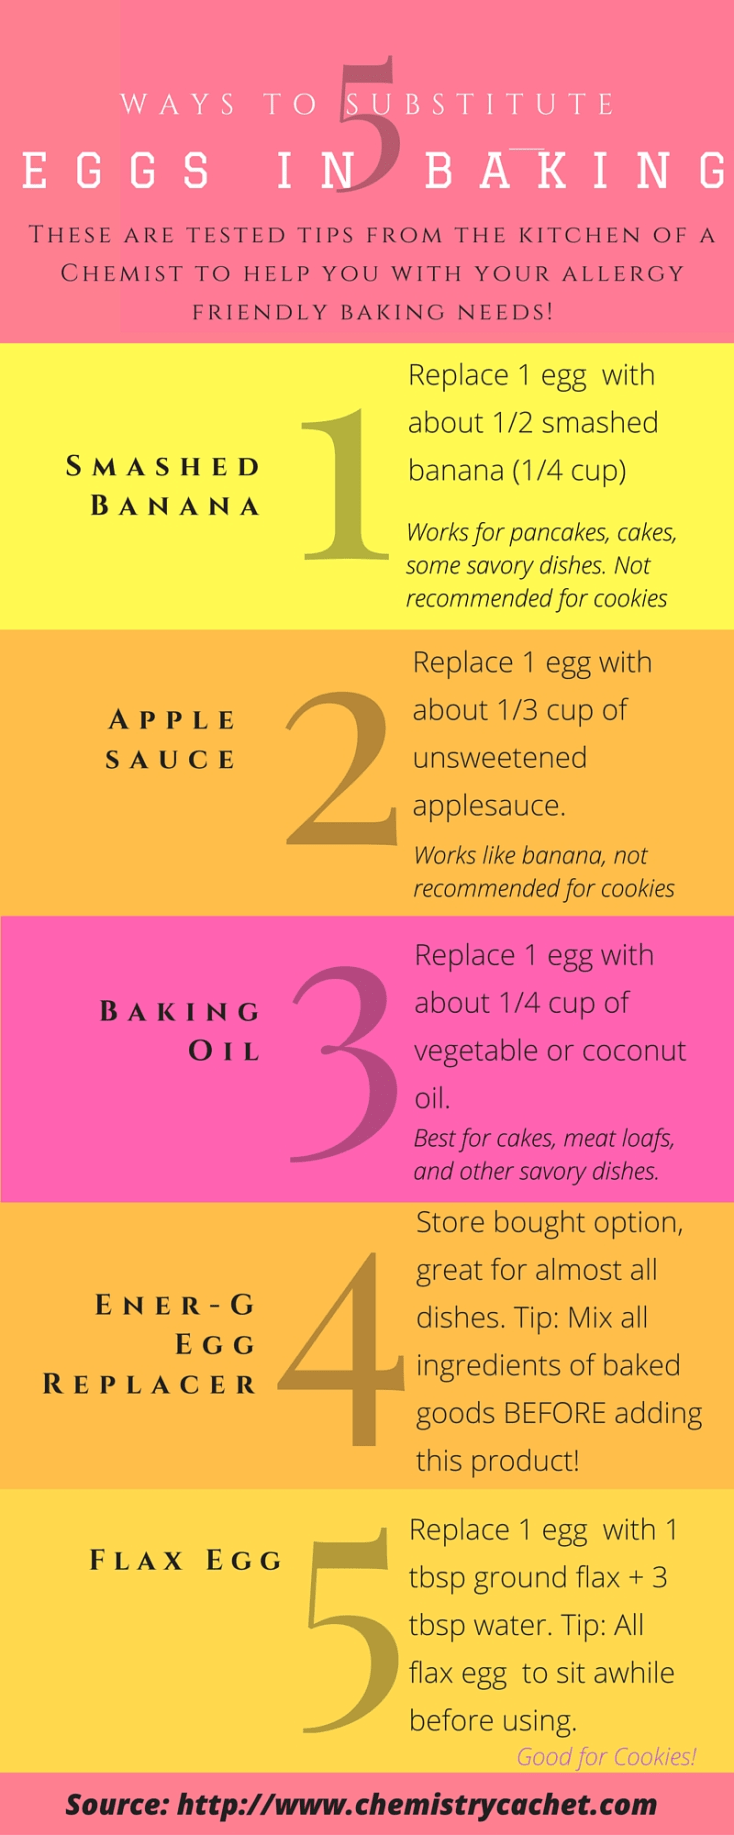 5 Ways to Substitute Eggs in Baking. Perfect for allergies or if you run out! These are tested tips that work great! Find more great information like healthy baking substitutes on chemistrycachet.com